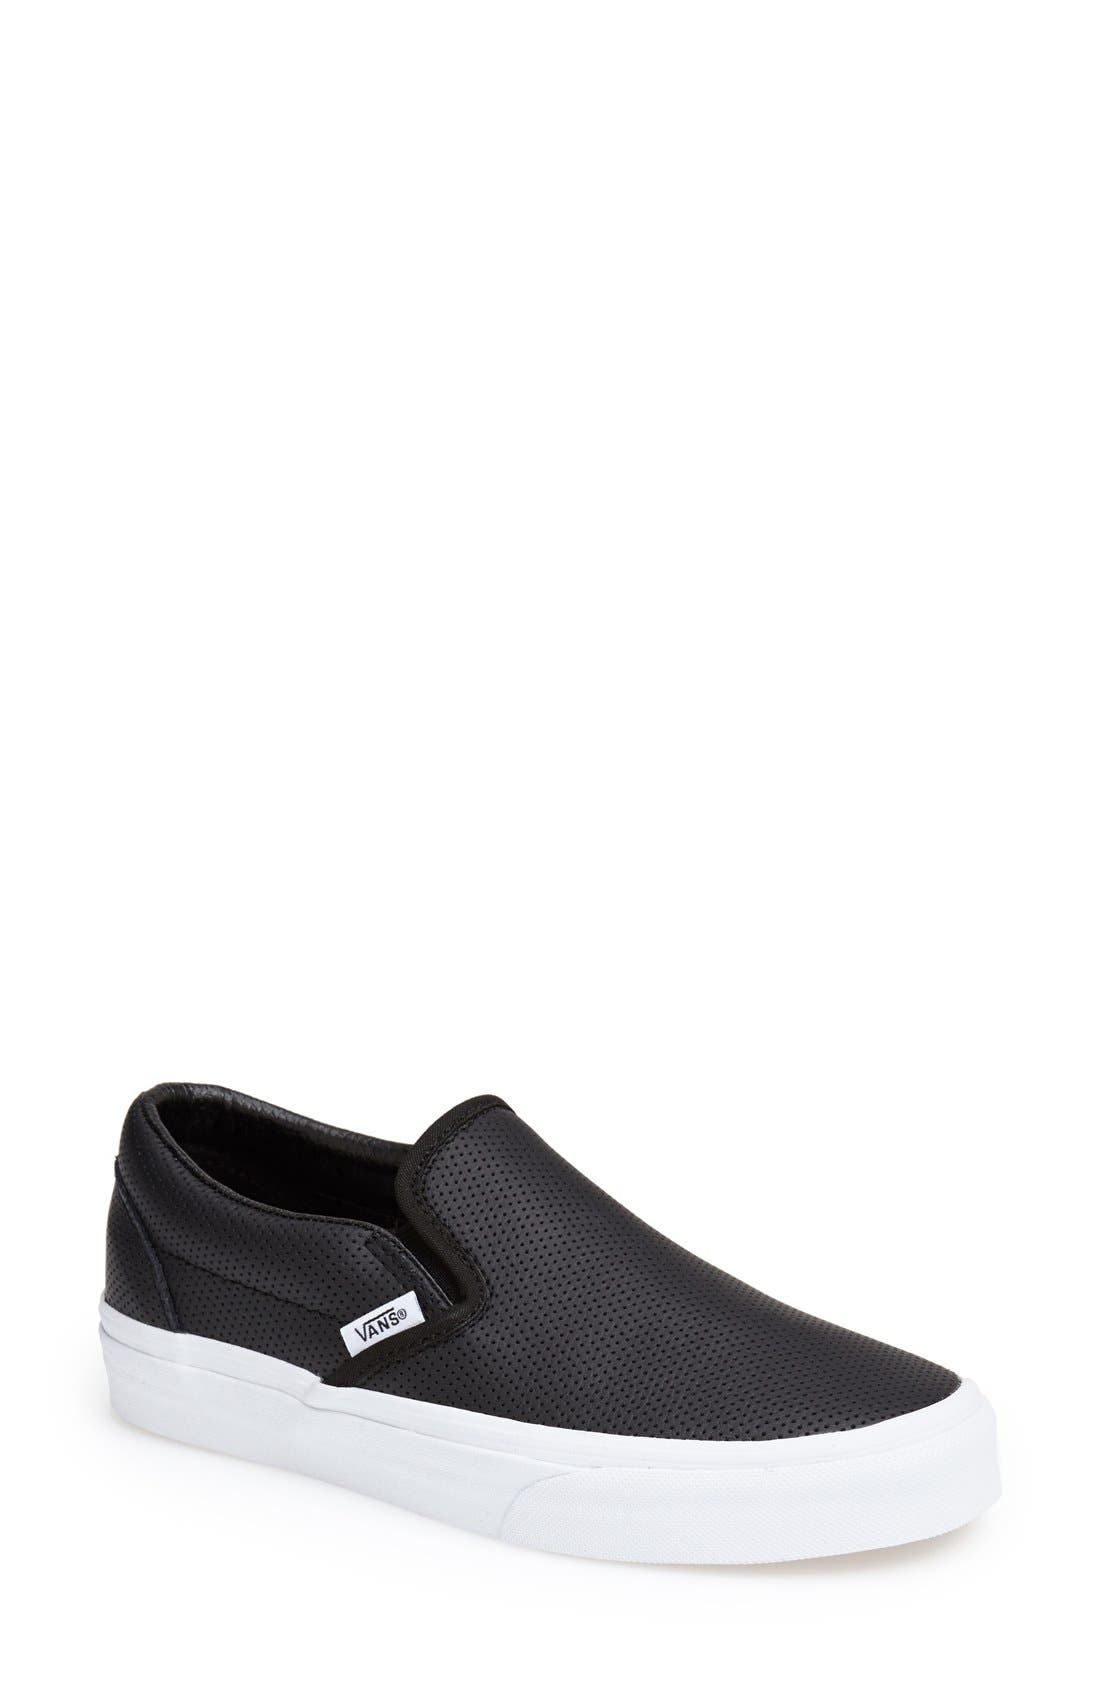 Vans shoes - results from brands Vans, Vaneli, Pleaser, products like Vaneli MAEVE STRAPPY SANDAL at Nordstrom Rack - Womens Shoes - Womens Flat Sandals, Mezzo By Van Eli Rickie Women's Black Pump 6 W, Vans Womens Atwood Lace Up Skate Shoes, Shoes.